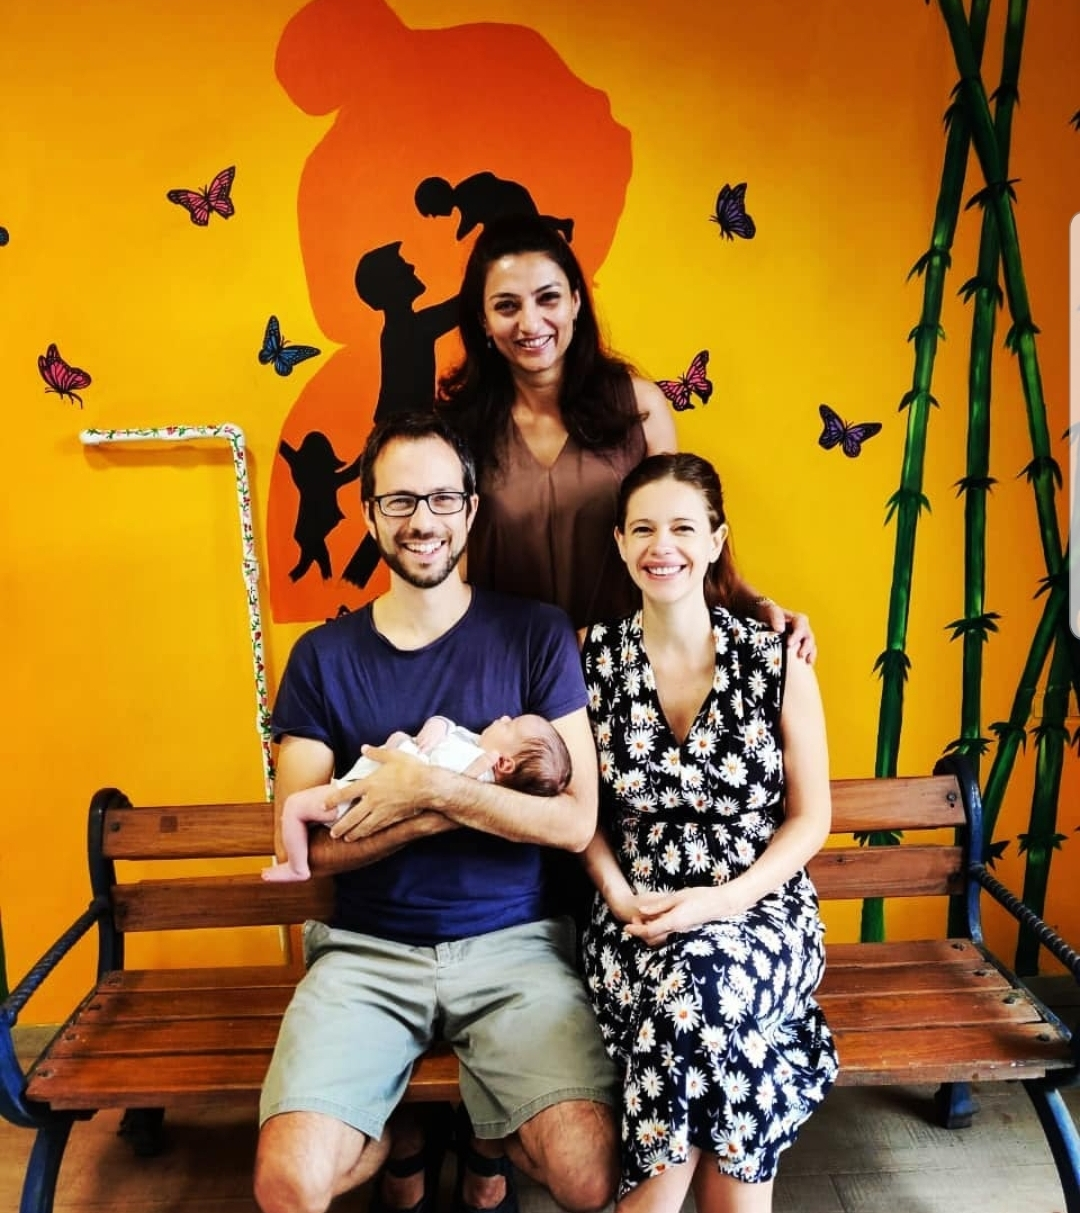 Kalki Koechlin and boyfriend Guy Hershberg were blessed with a baby daughter named Sappho